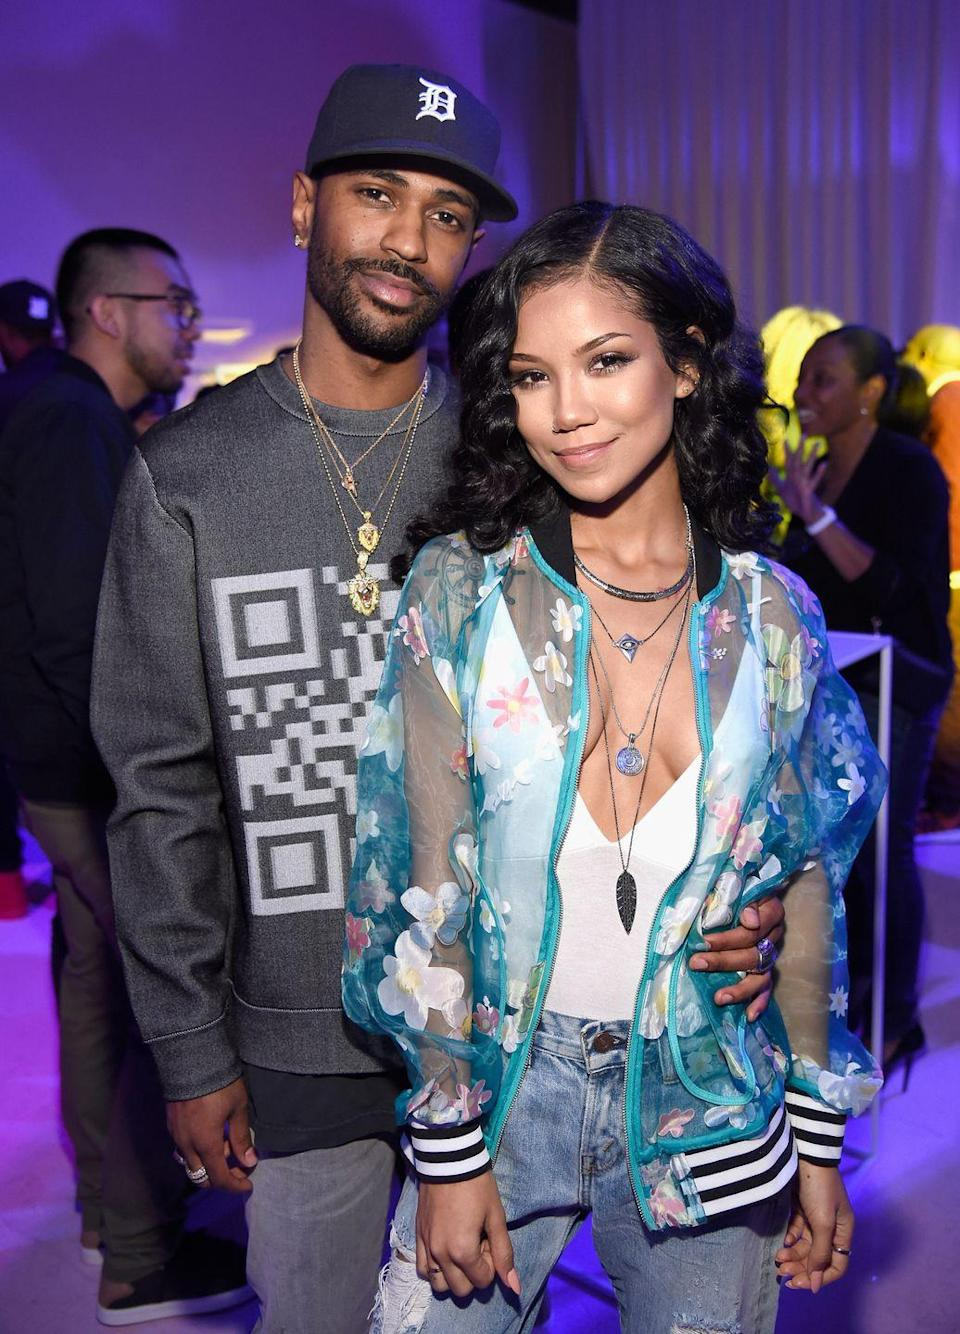 """<p>""""Her wide stance tells us she feels grounded and confident,"""" says Donaldson. As Sean holds her waist, Jhené doesn't feel the need to latch onto him in any way, Donaldson points out, because Jhené knows he's not going anywhere. He's proven over their years together that he'll always be there for her. </p>"""